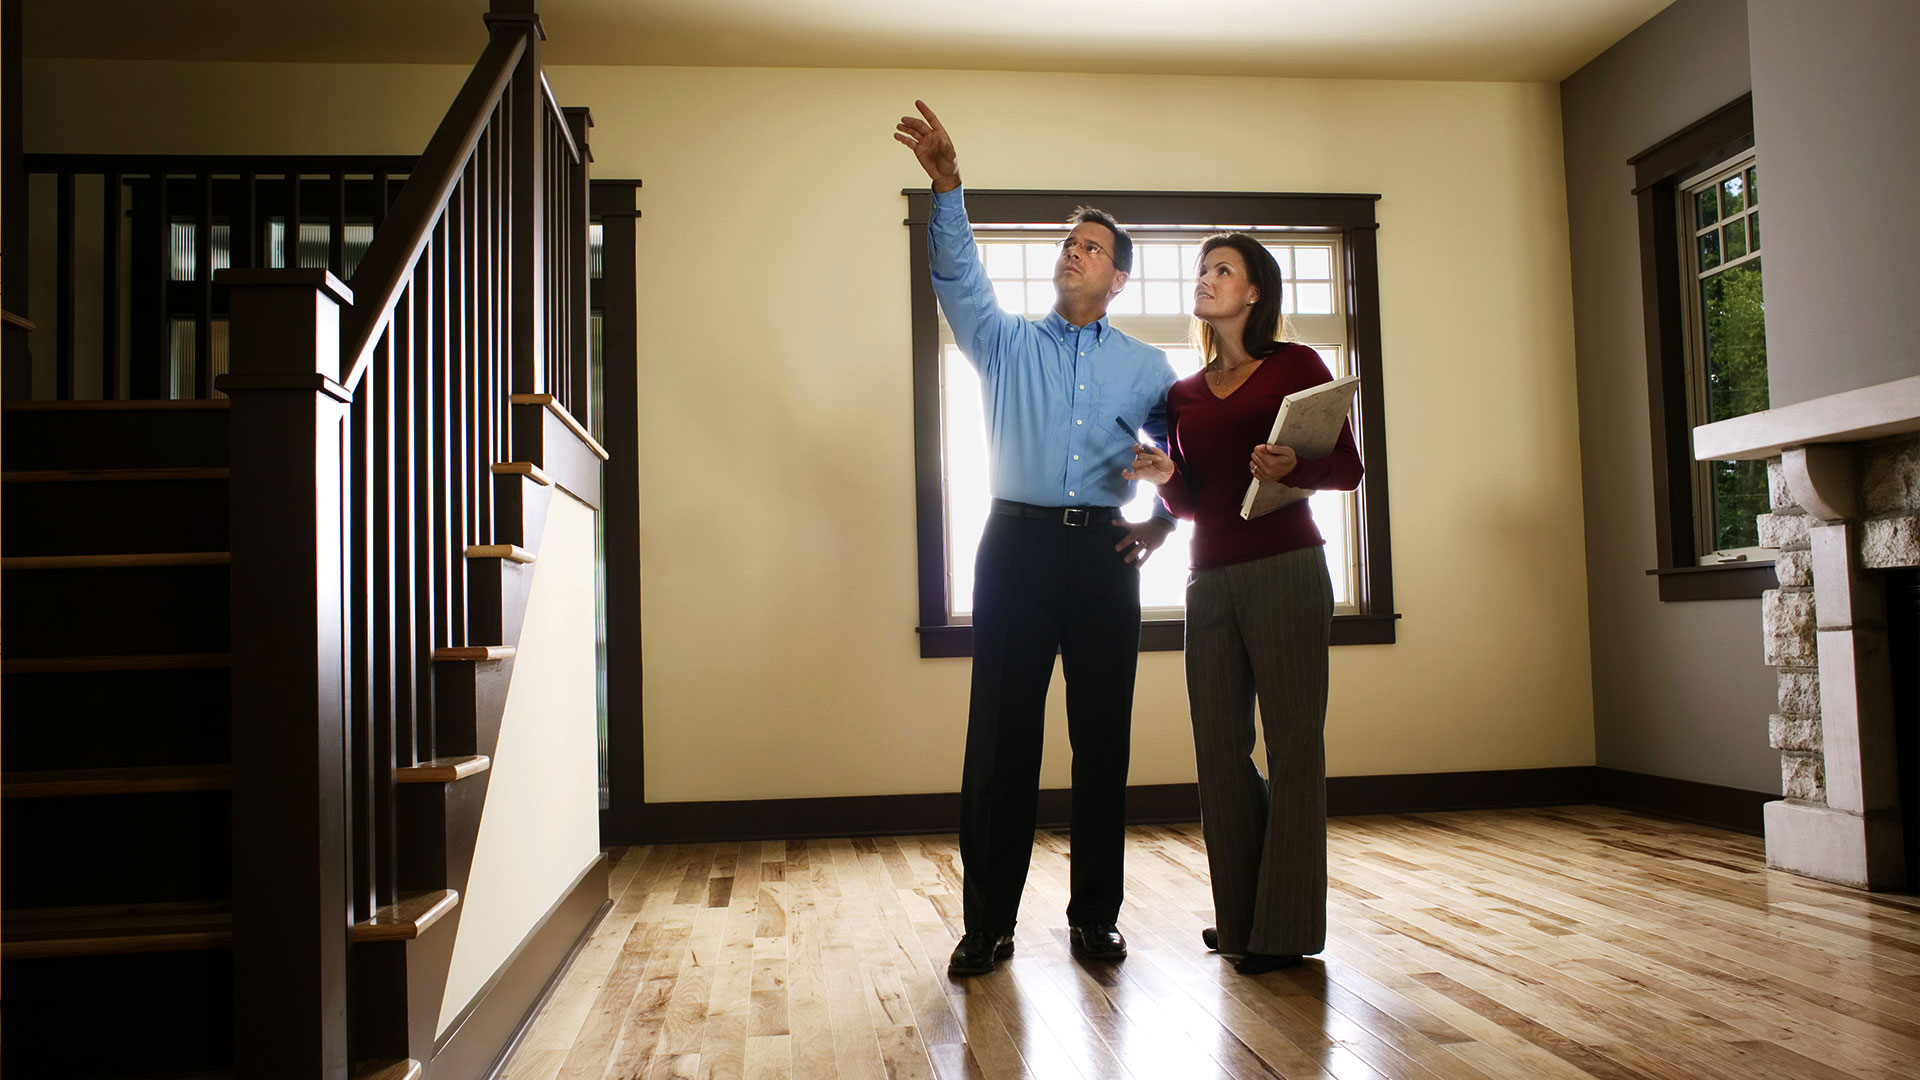 Central Florida Residential Property Inspection